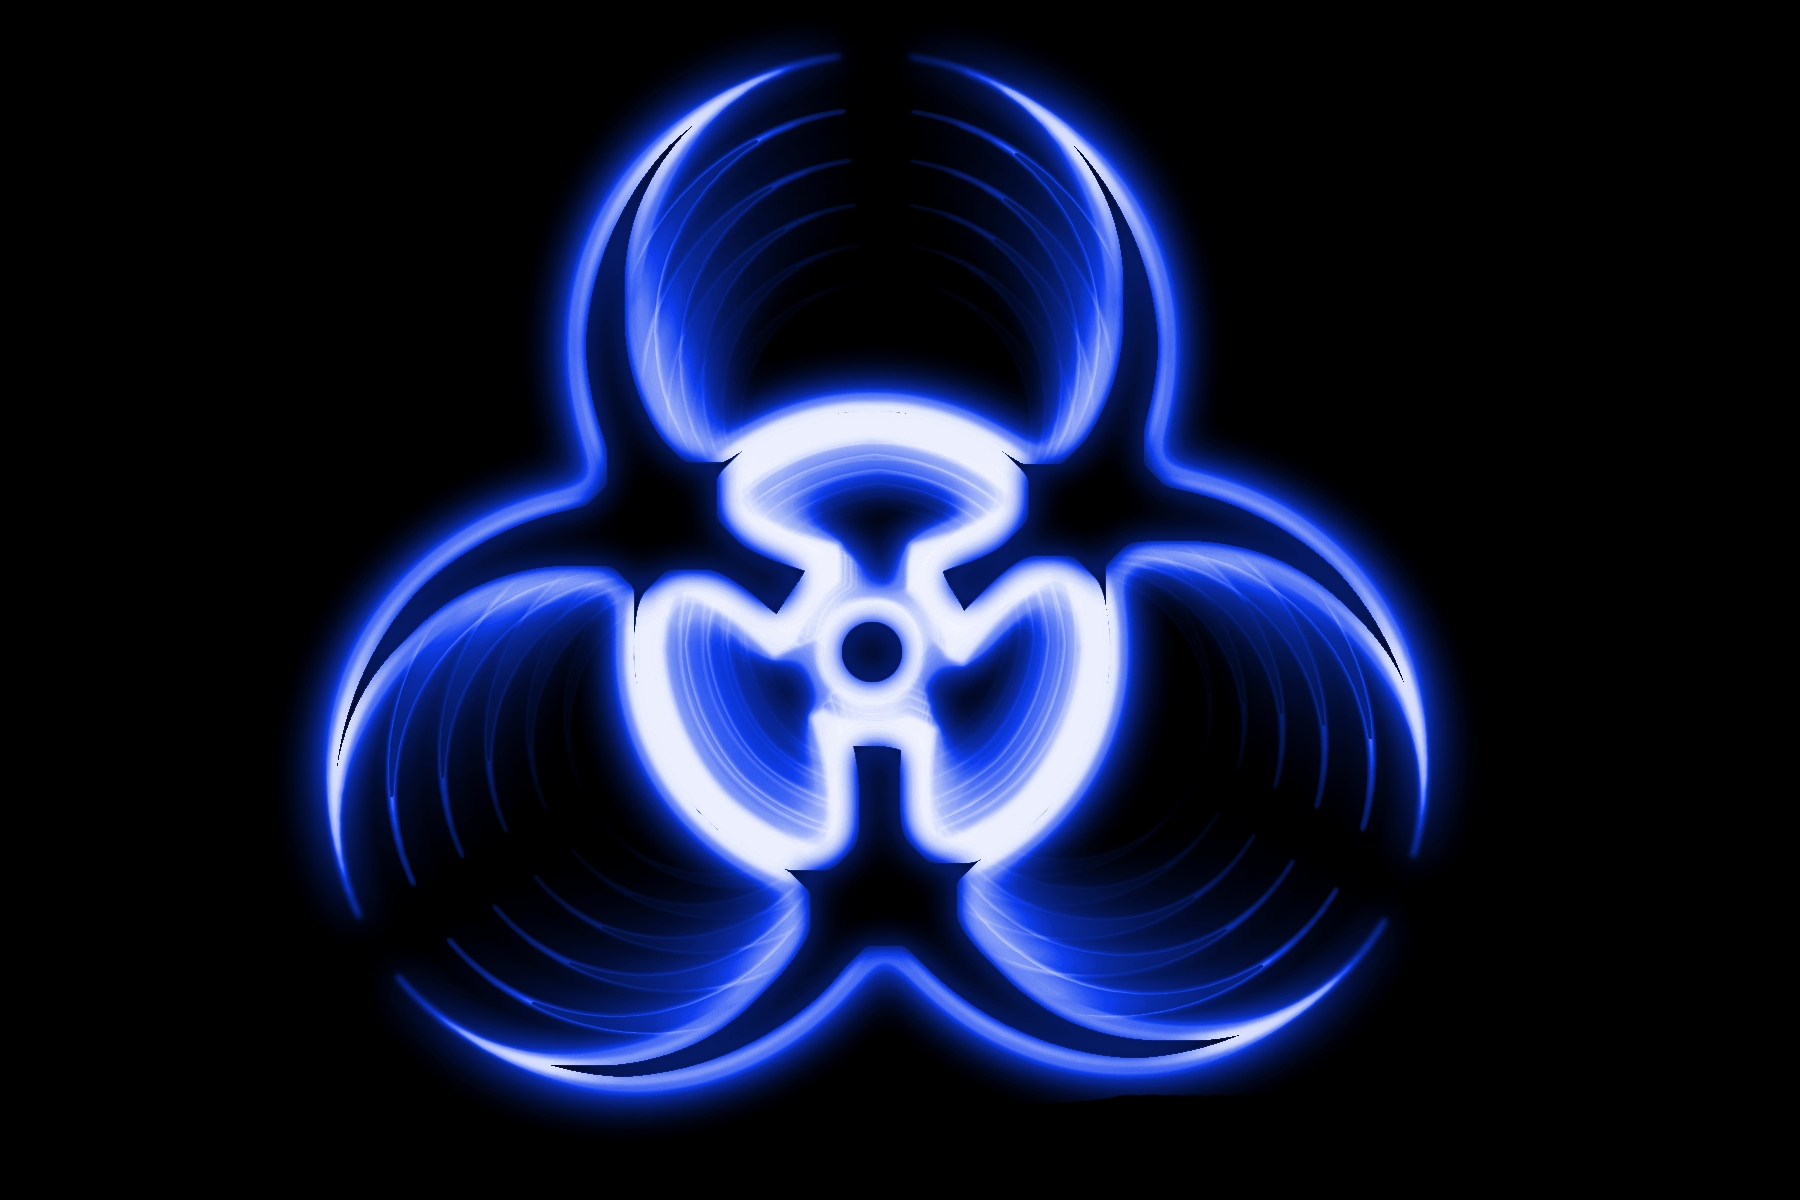 Blue Biohazard Static Logo Wallpaper Background Picture And Layout 1800x1200